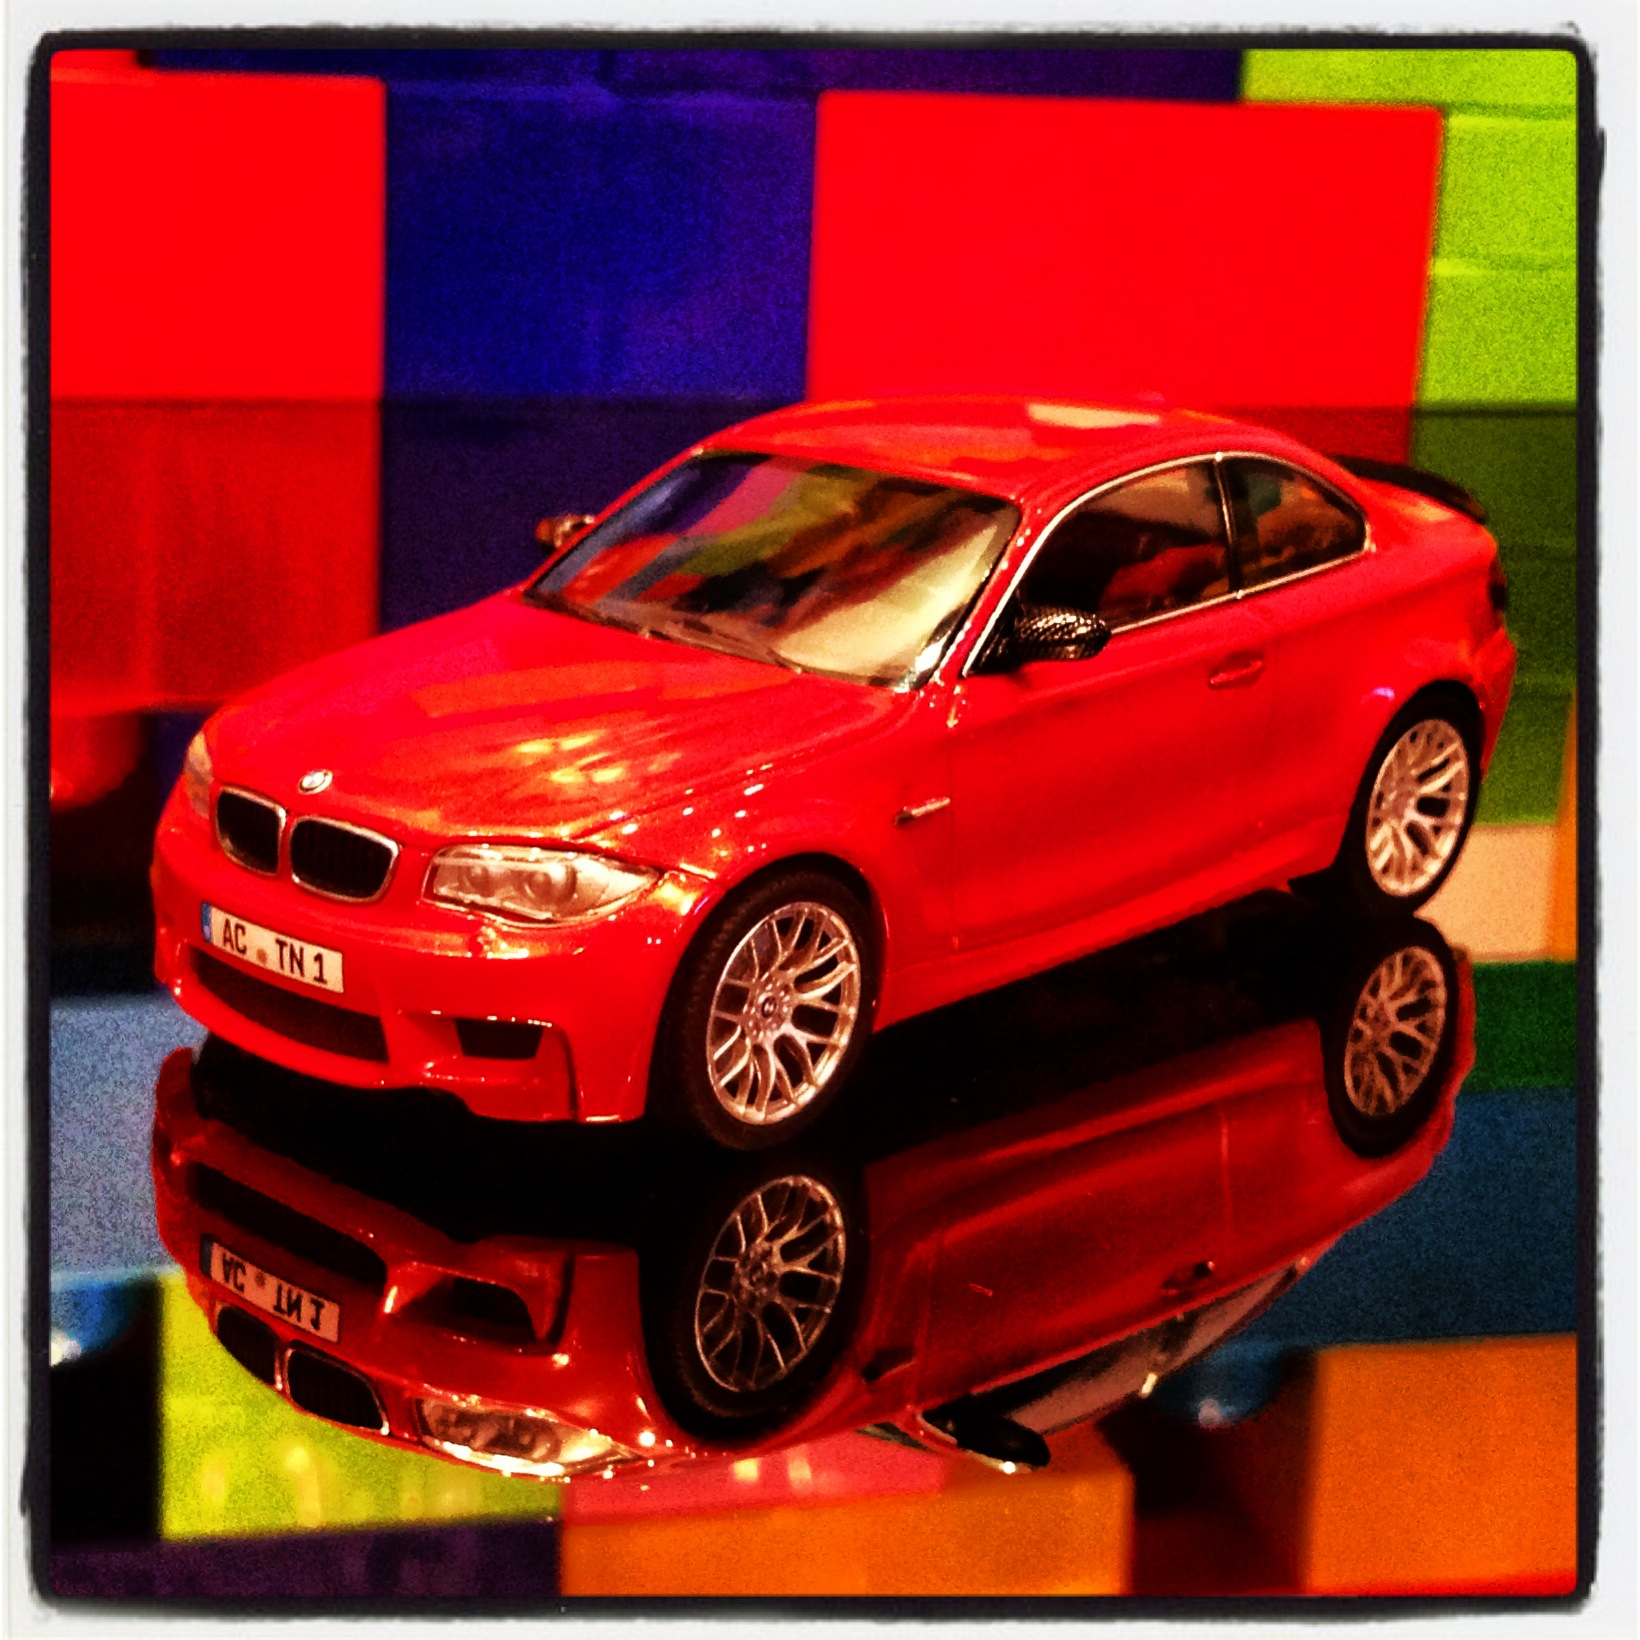 BMW 1M coupe (E82) red with black spoiler (minichamps)